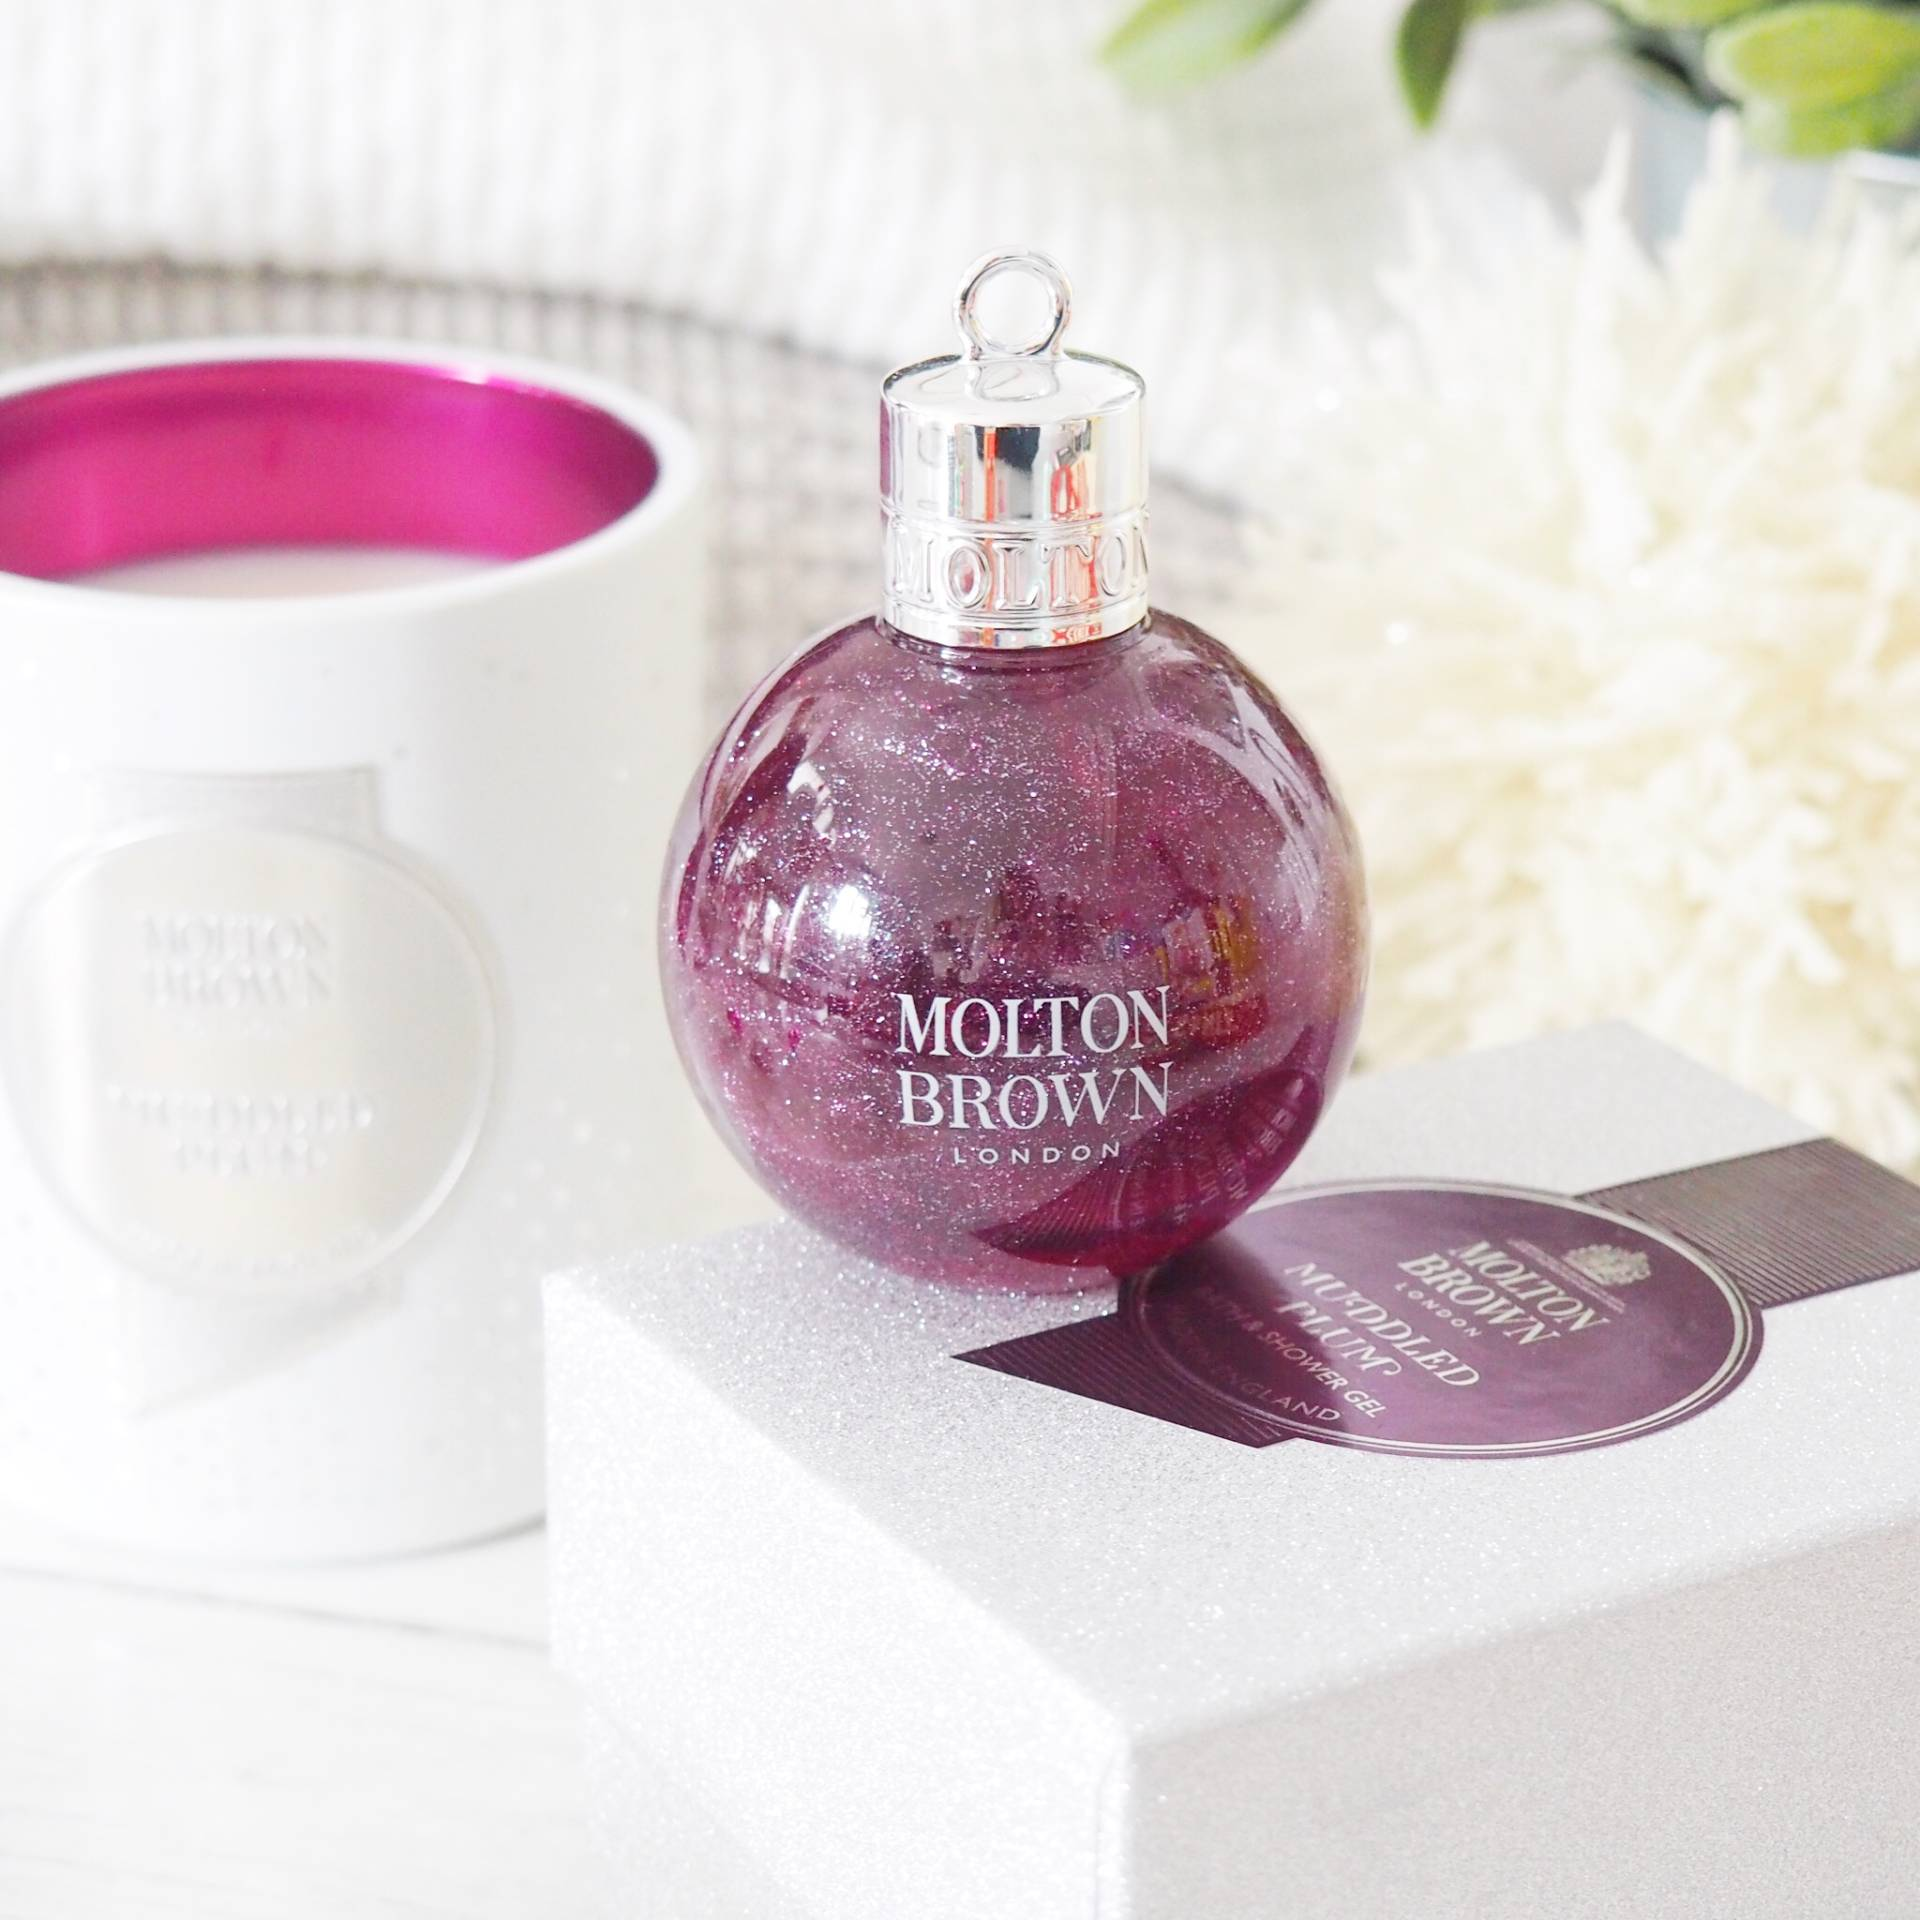 Molton-Brown-Muddled-Plum